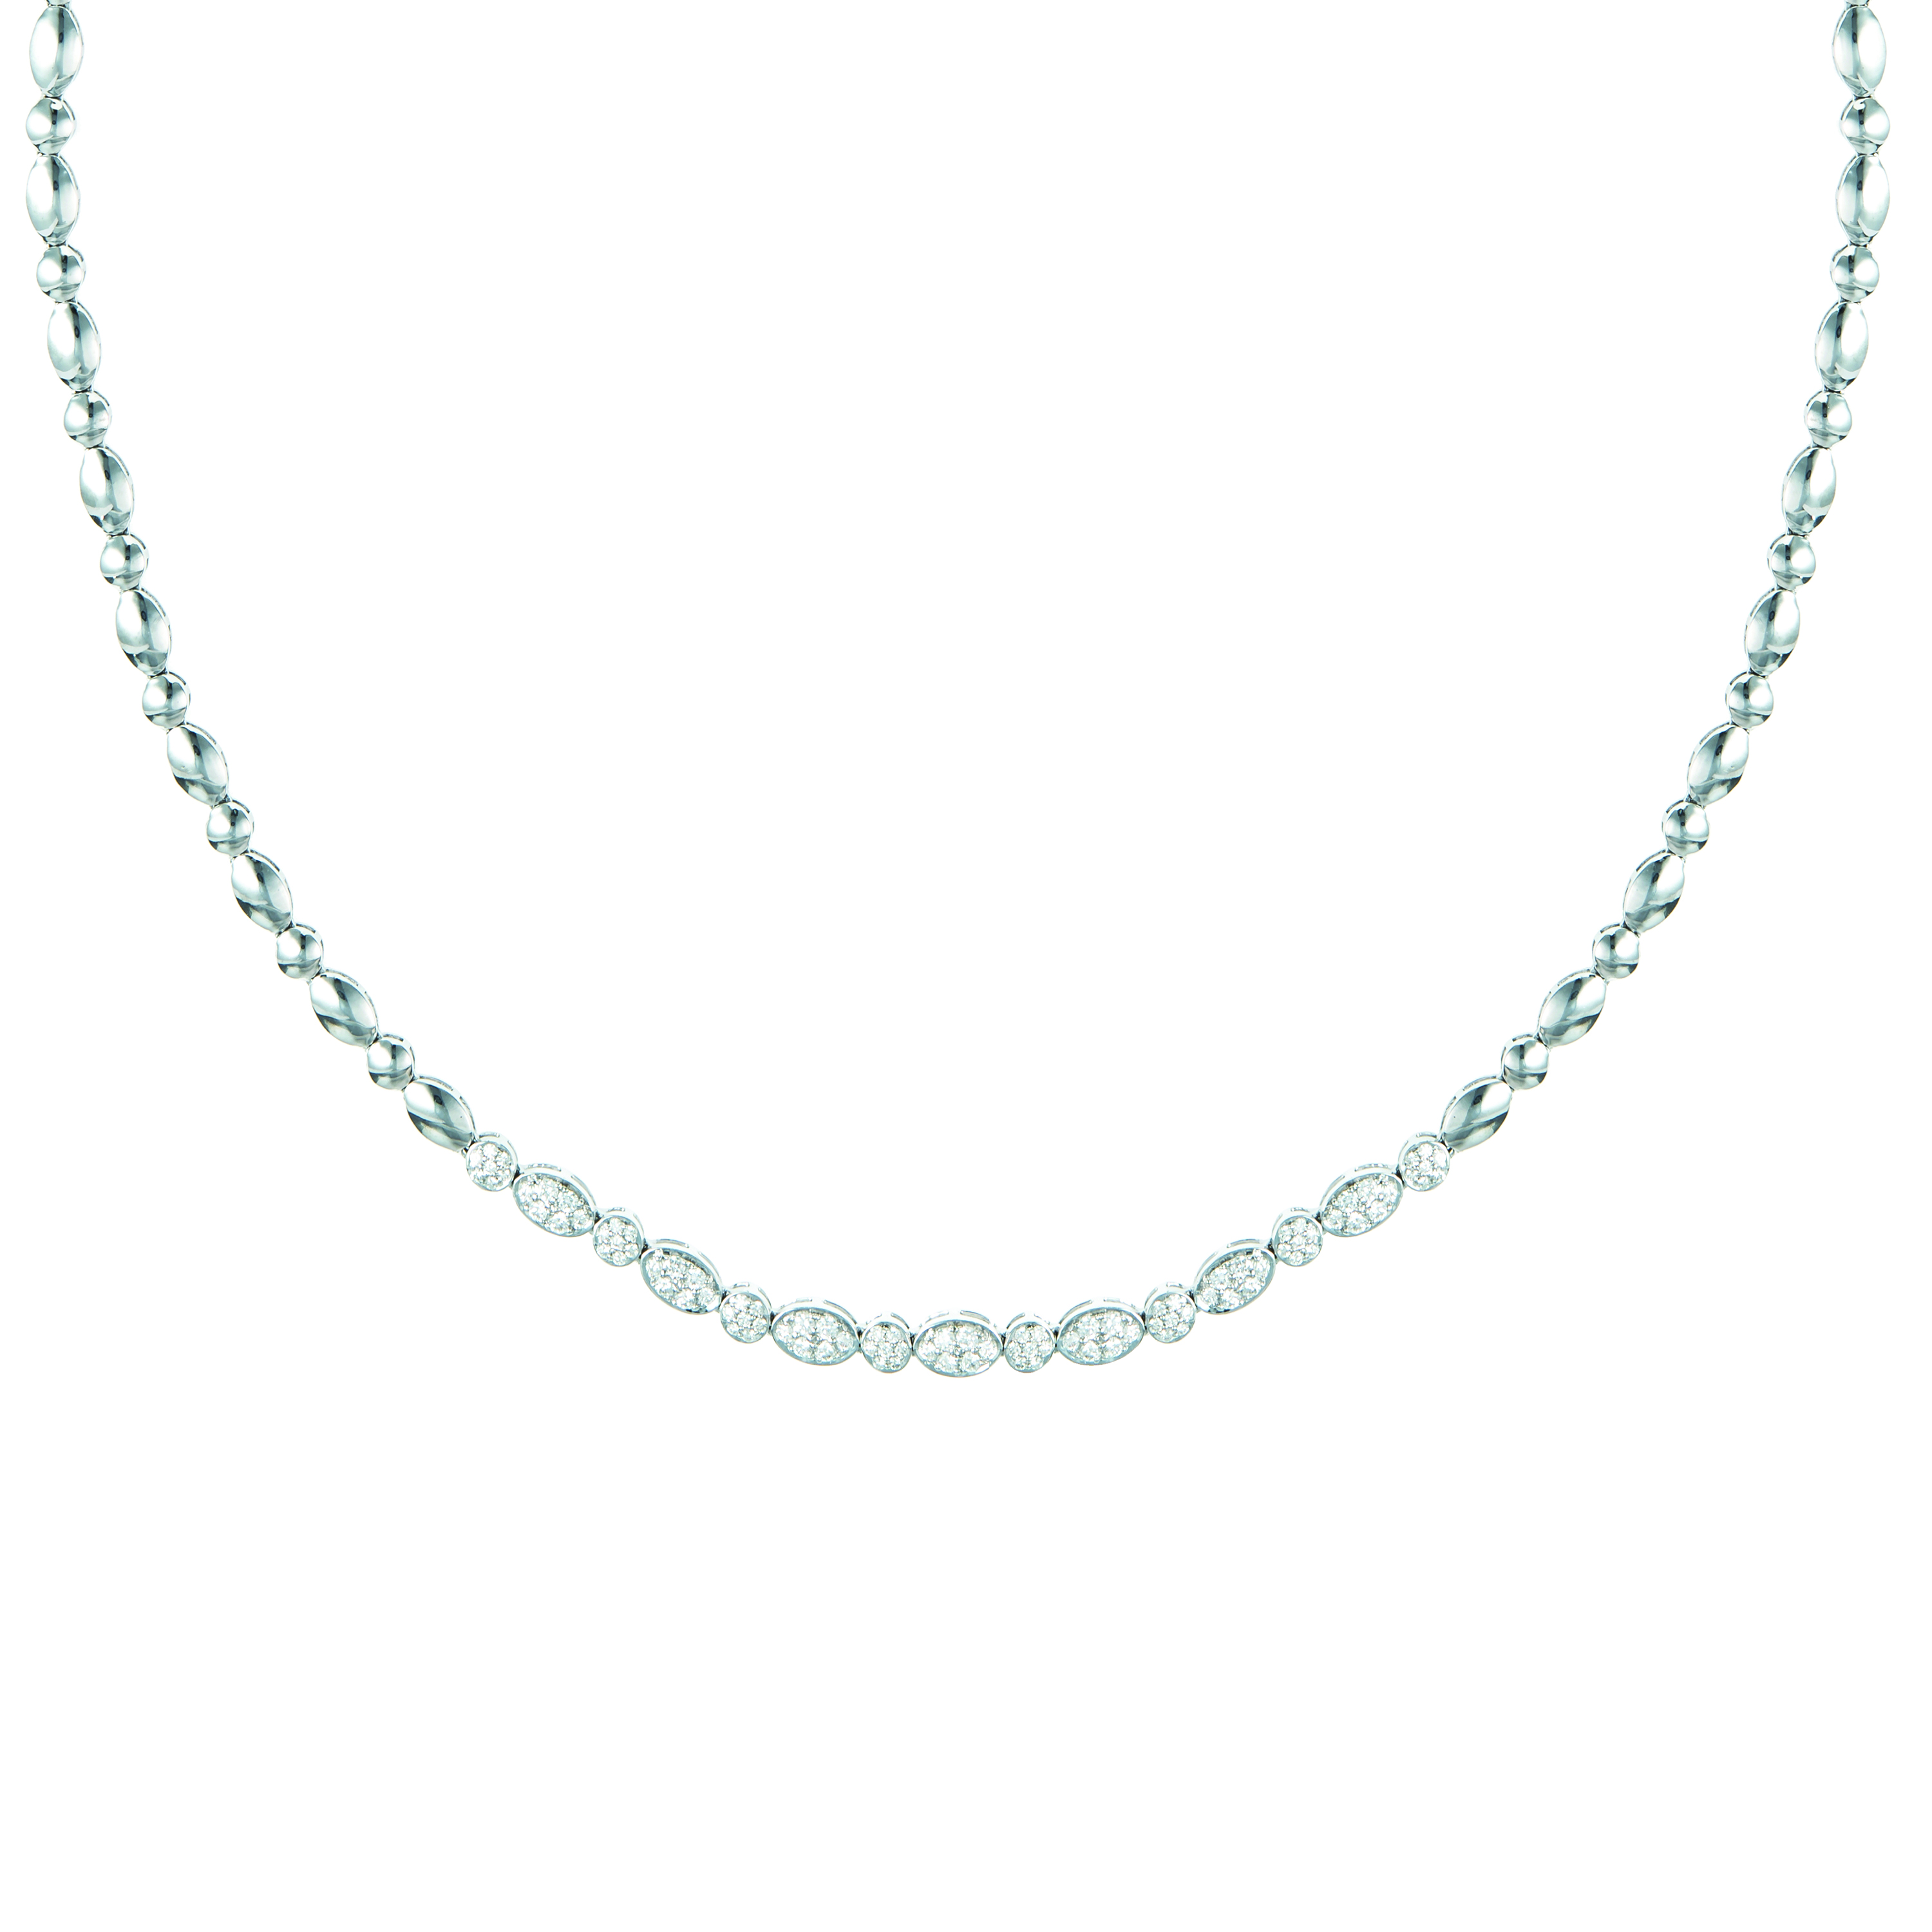 necklace2